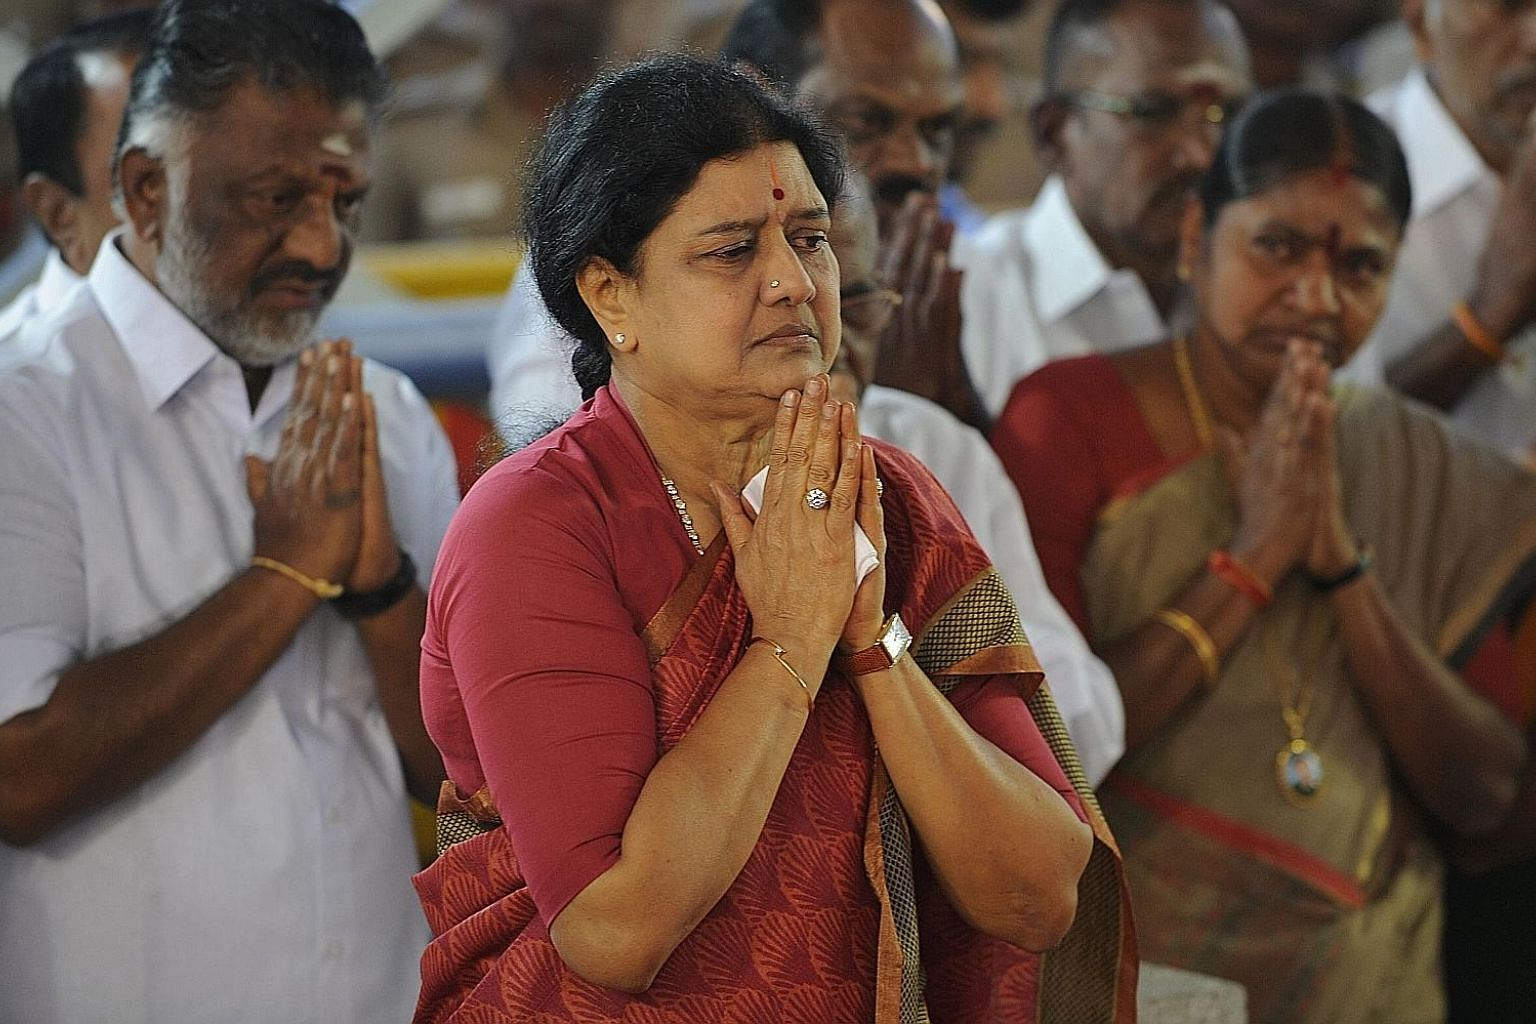 Ms V.K. Sasikala paying her respects at a memorial for Tamil Nadu's late chief minister Jayalalithaa Jayaram after being elected general secretary of the AIADMK party in Chennai on Dec 30.